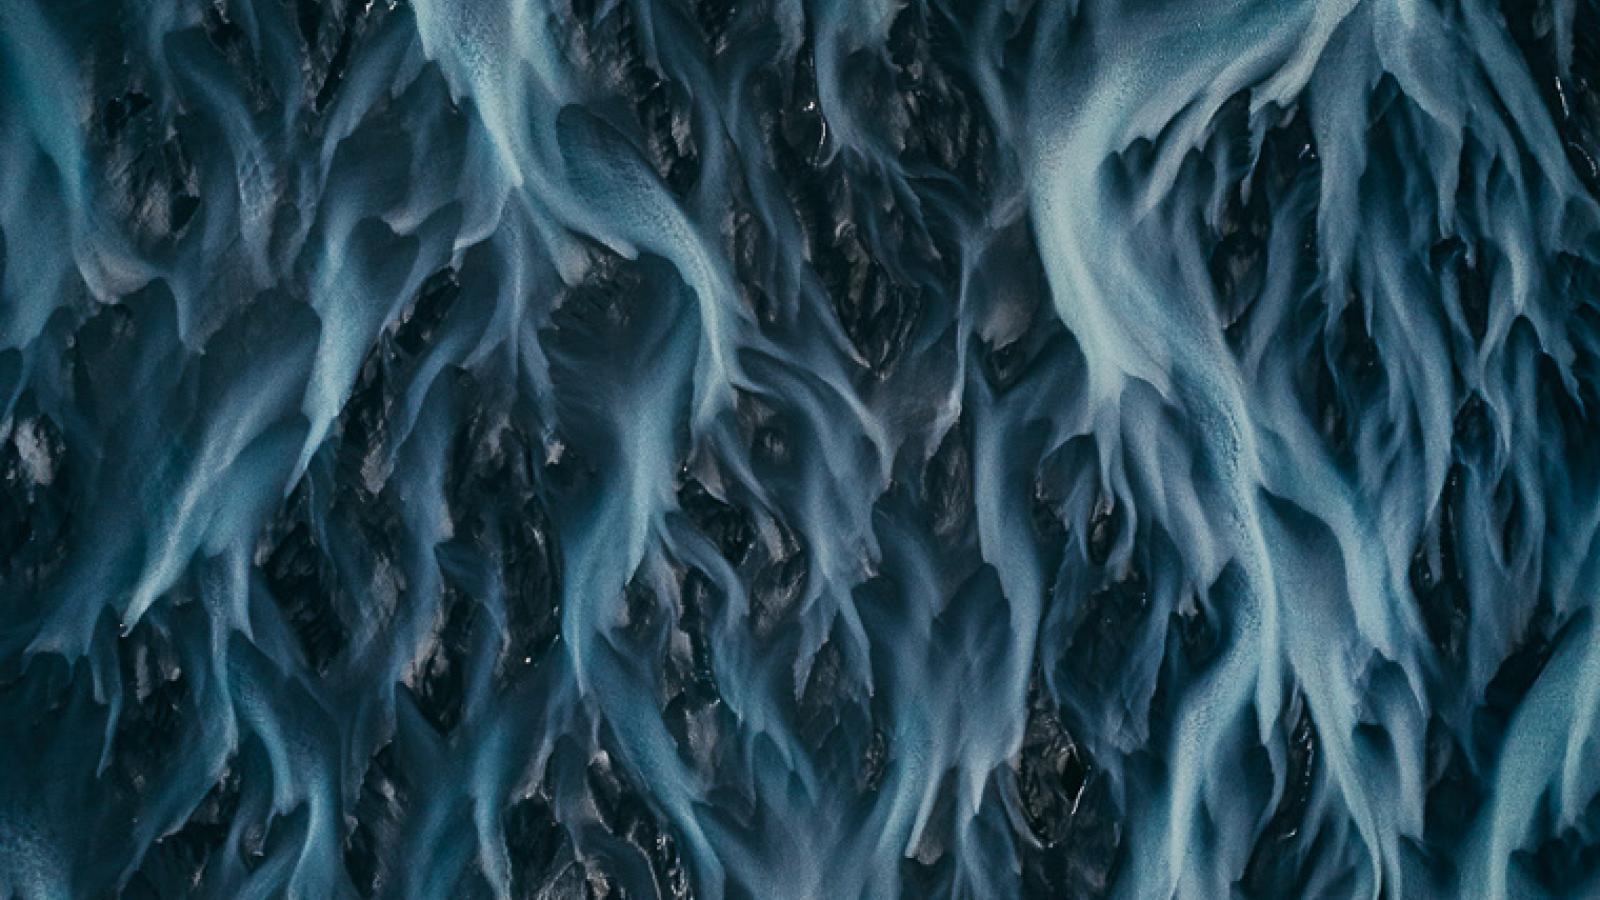 The River Veins Series by Tom Hegen